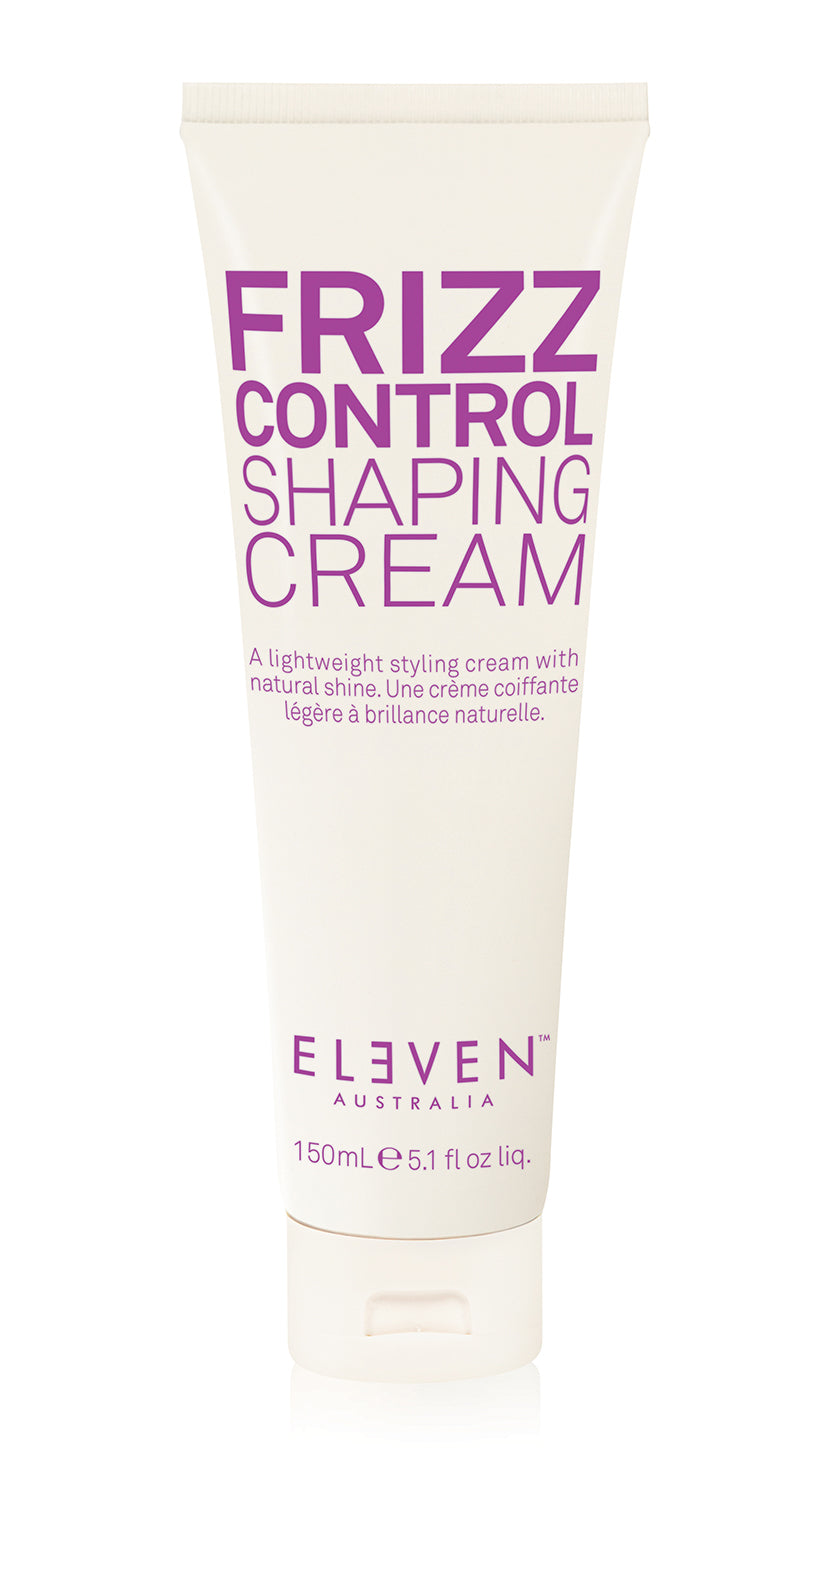 Frizz Control Shaping Cream 150g